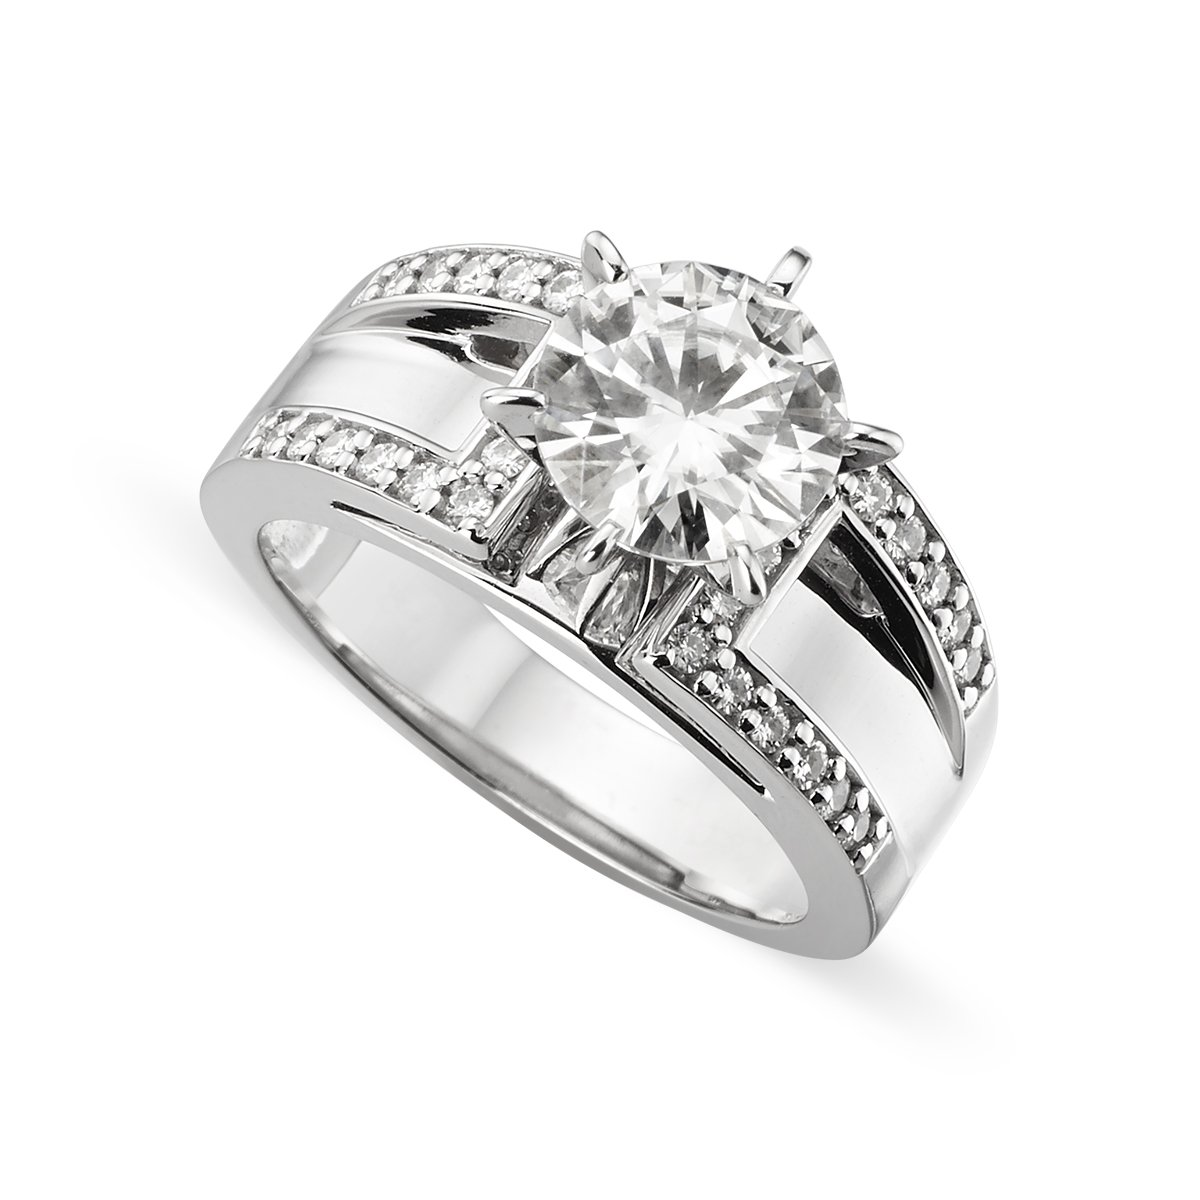 14K White Gold Round Brilliant Cut 8.0mm Moissanite Ring - size 8, 2.20cttw DEW By Charles & Colvard by Charles & Colvard